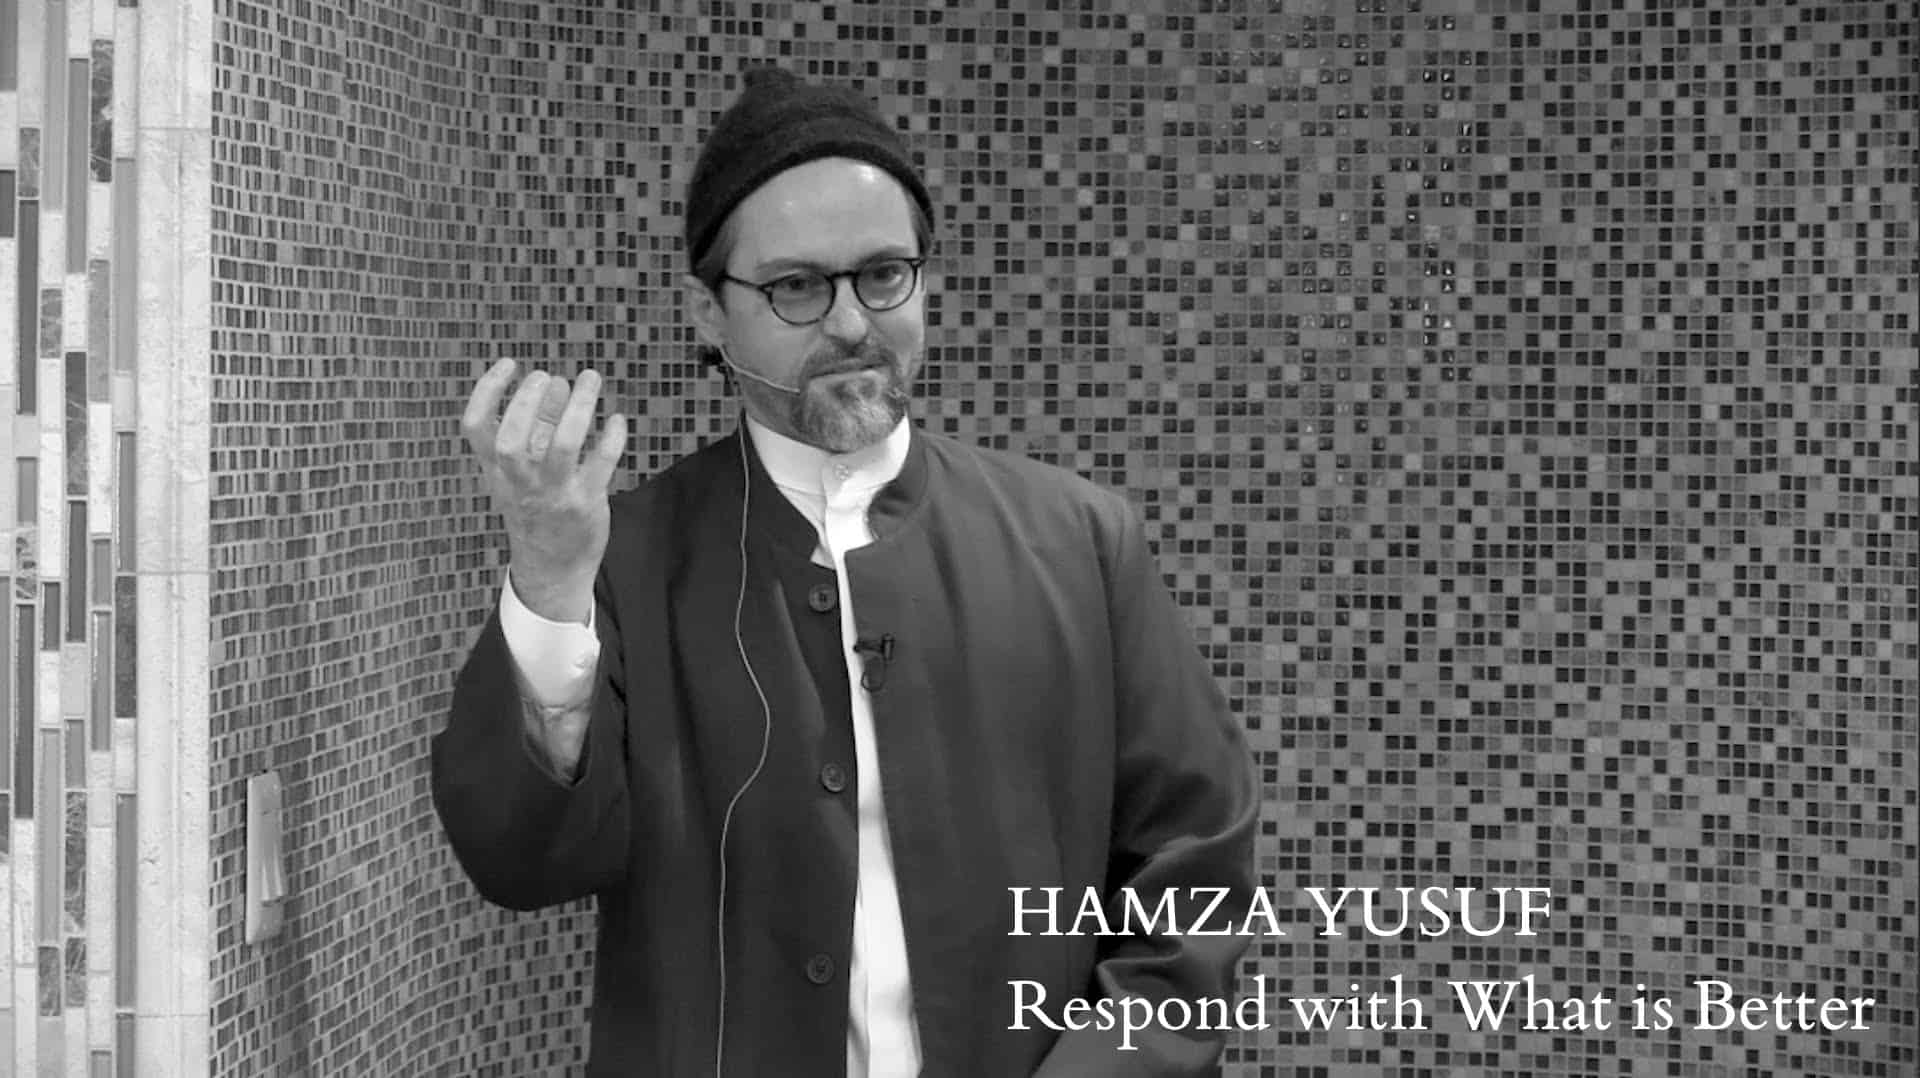 Hamza Yusuf – Respond with What is Better